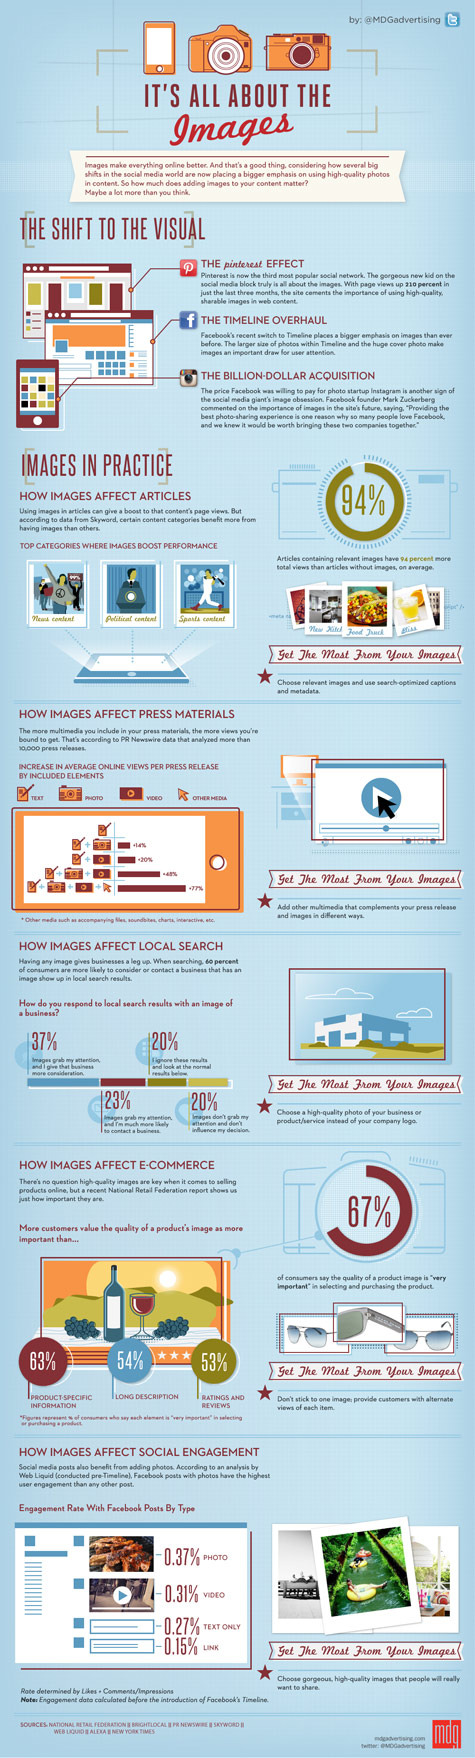 It's All About The Images infographic